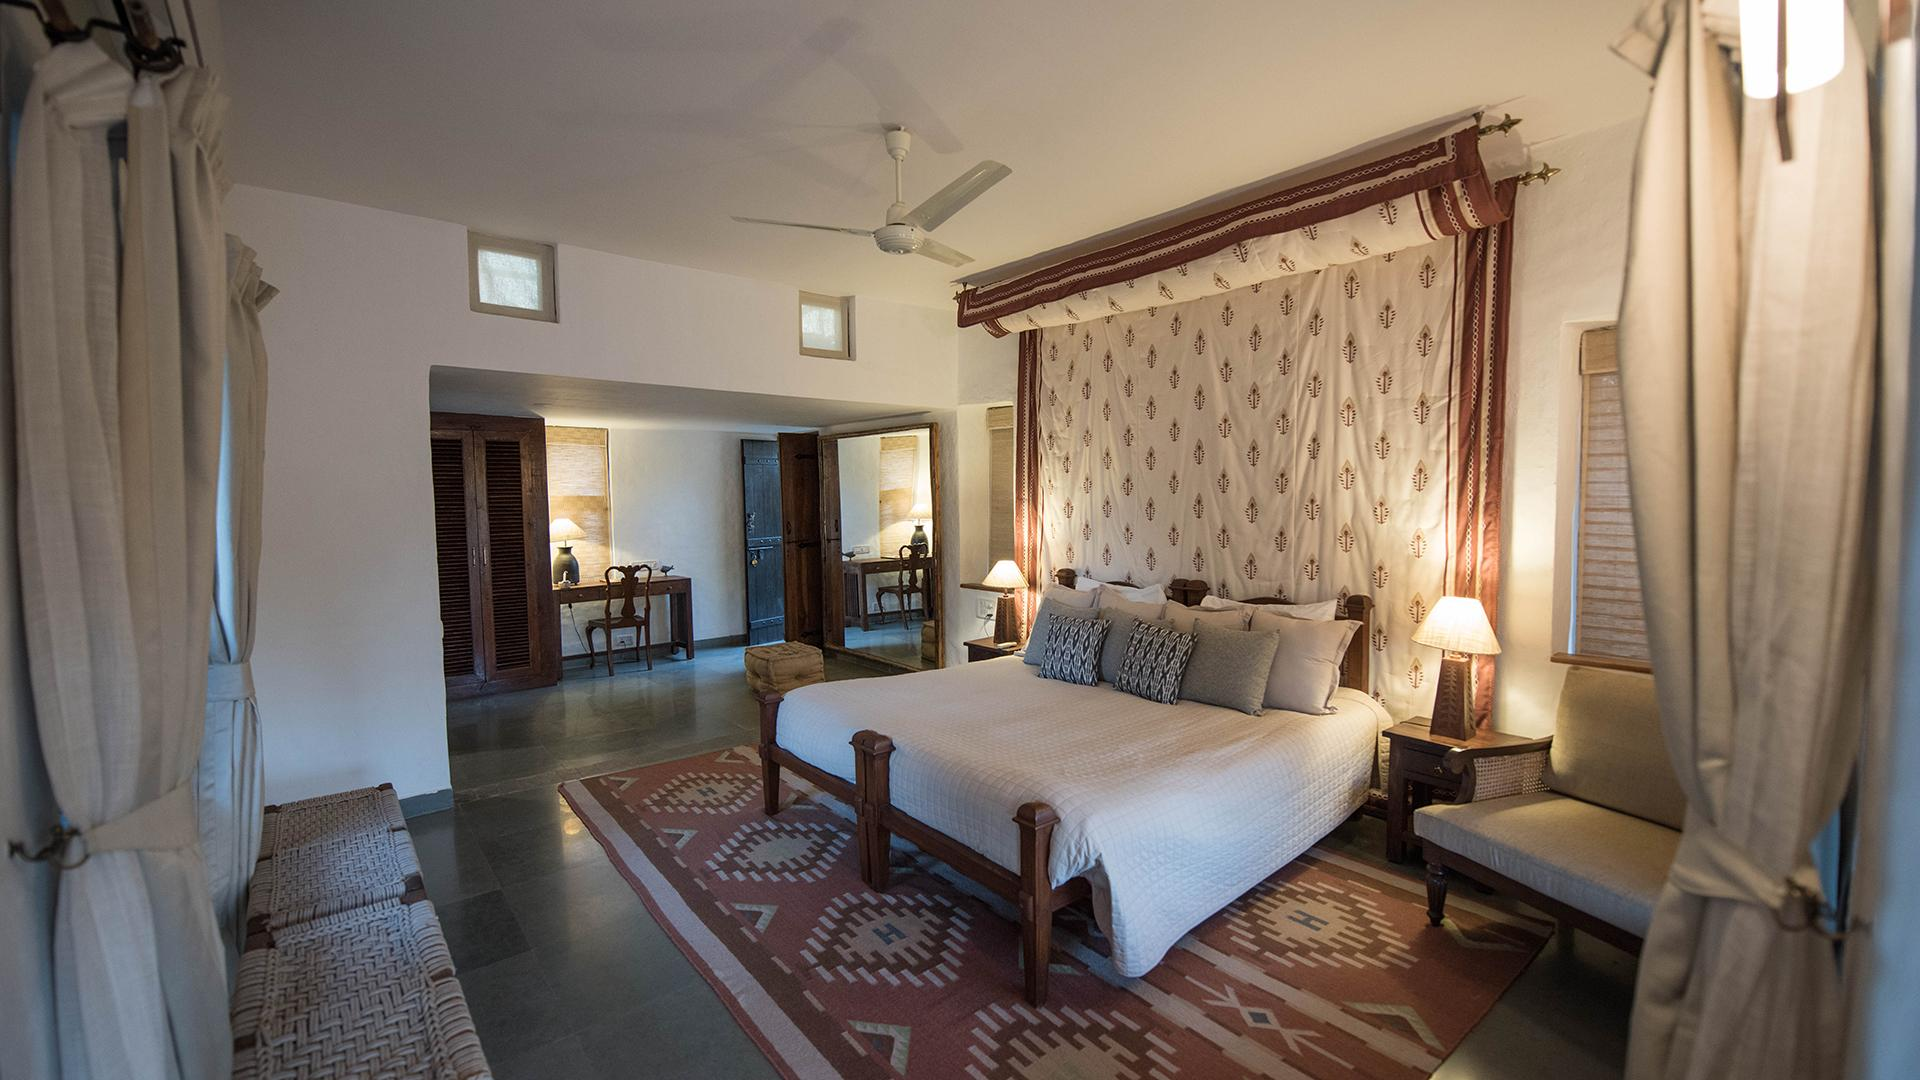 AC Cottage Room image 1 at Forsyth Lodge by Hoshangabad, Madhya Pradesh, India